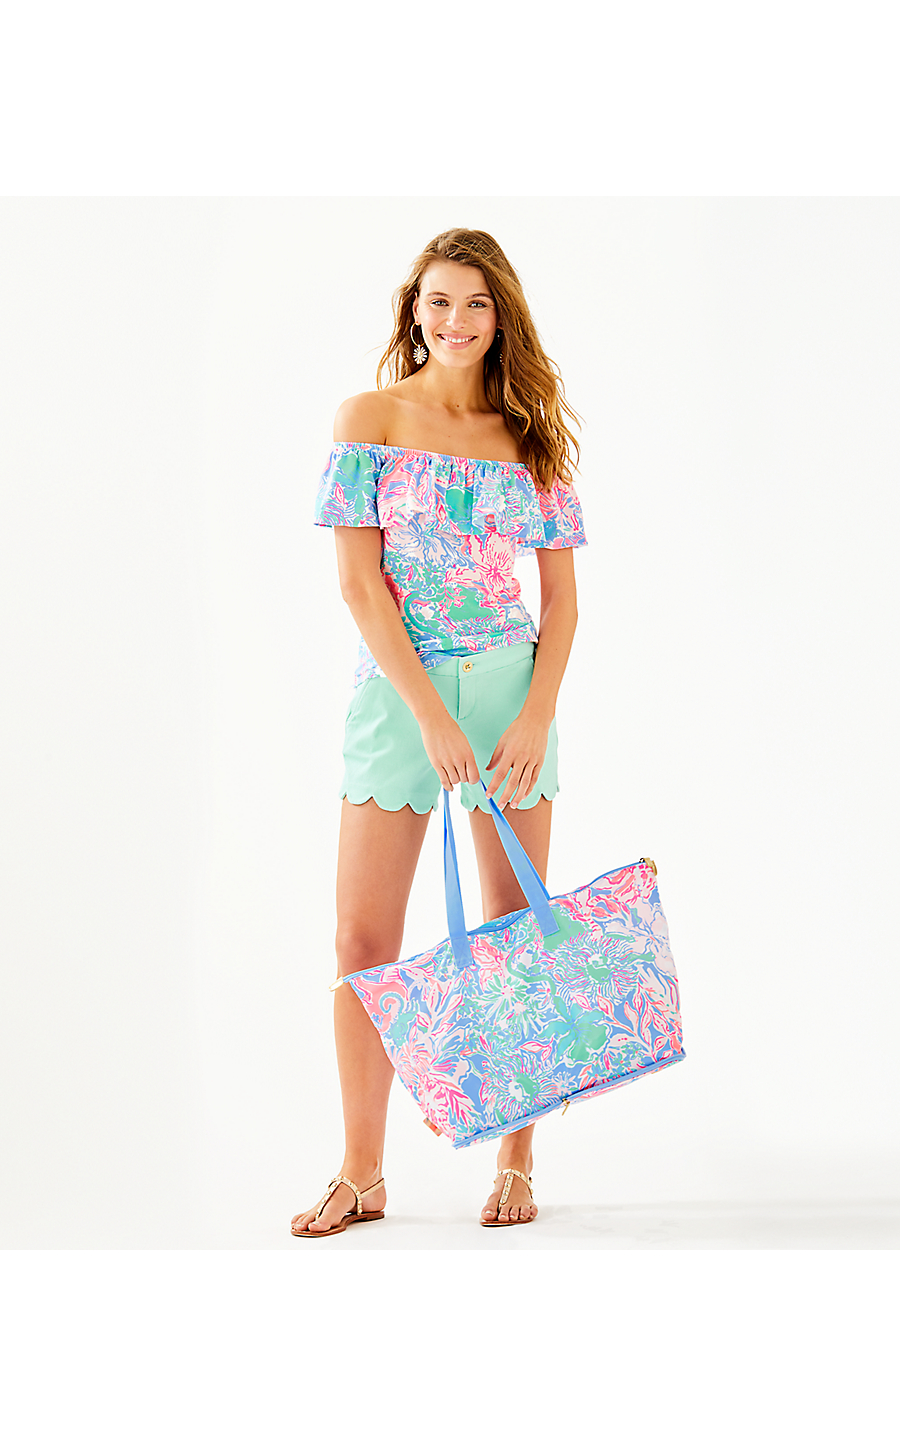 883aa5c4f75acc GETAWAY PACKABLE TOTE - VIVA LA LILLY - Lilly Pulitzer Store ...